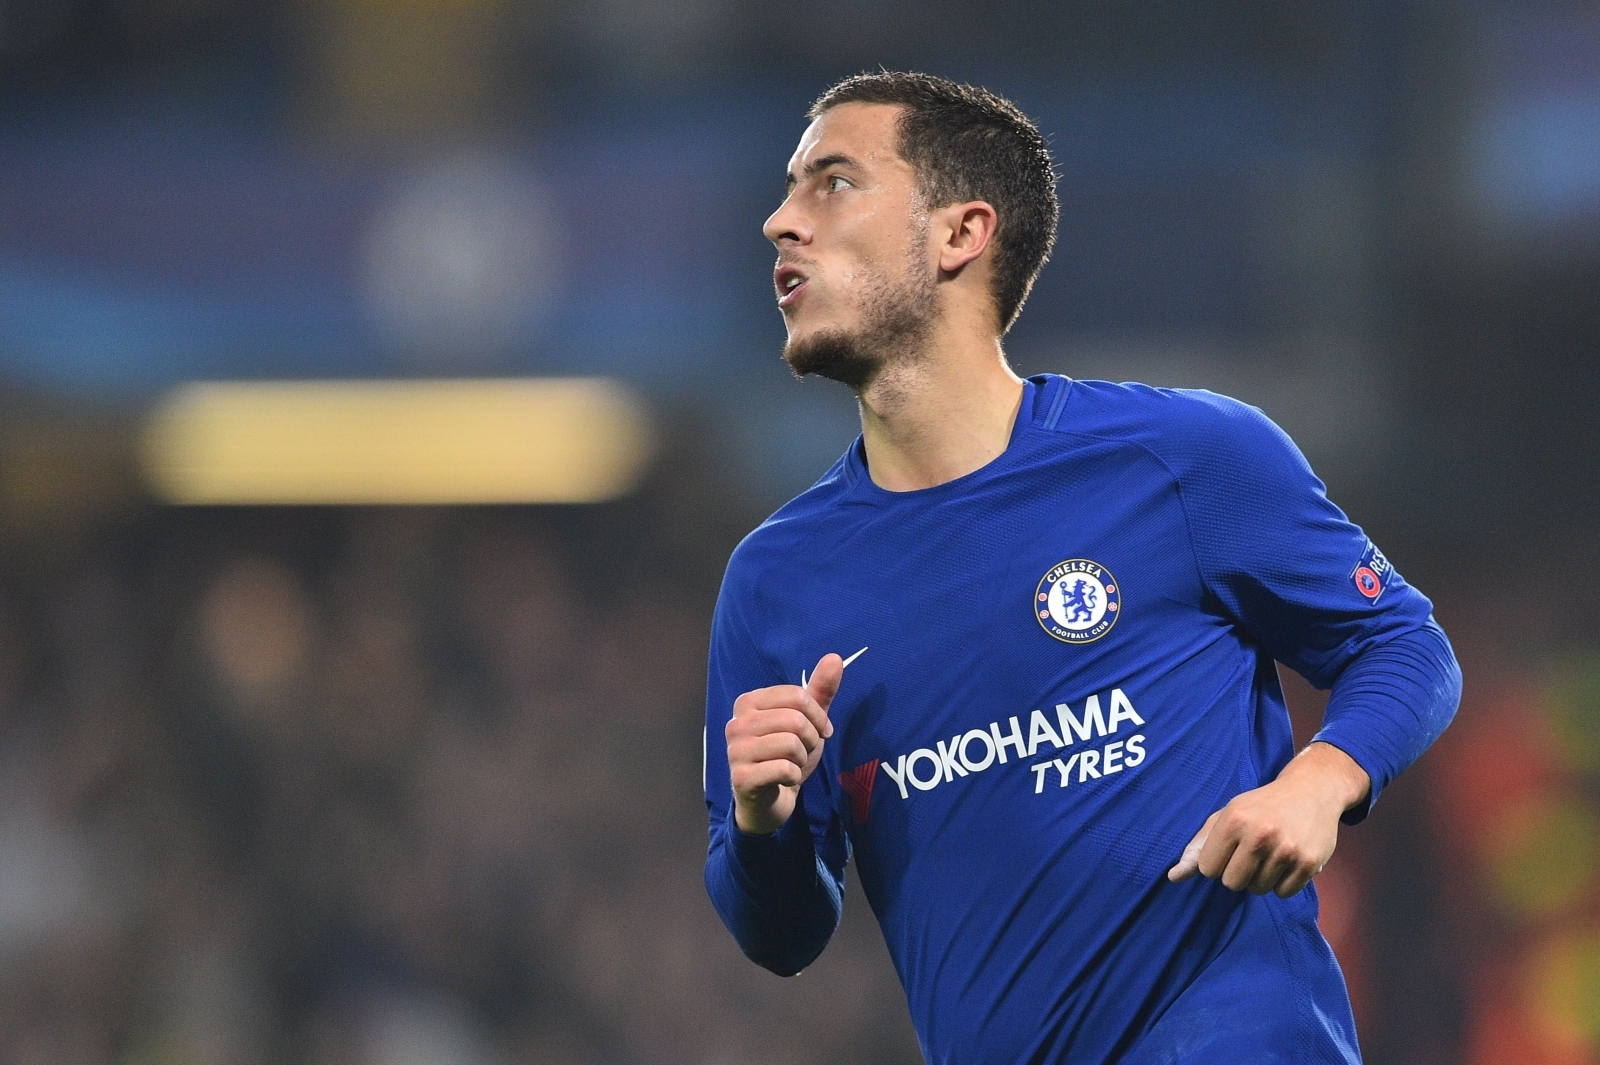 Chelsea saviour Eden Hazard unsure why he was substituted in